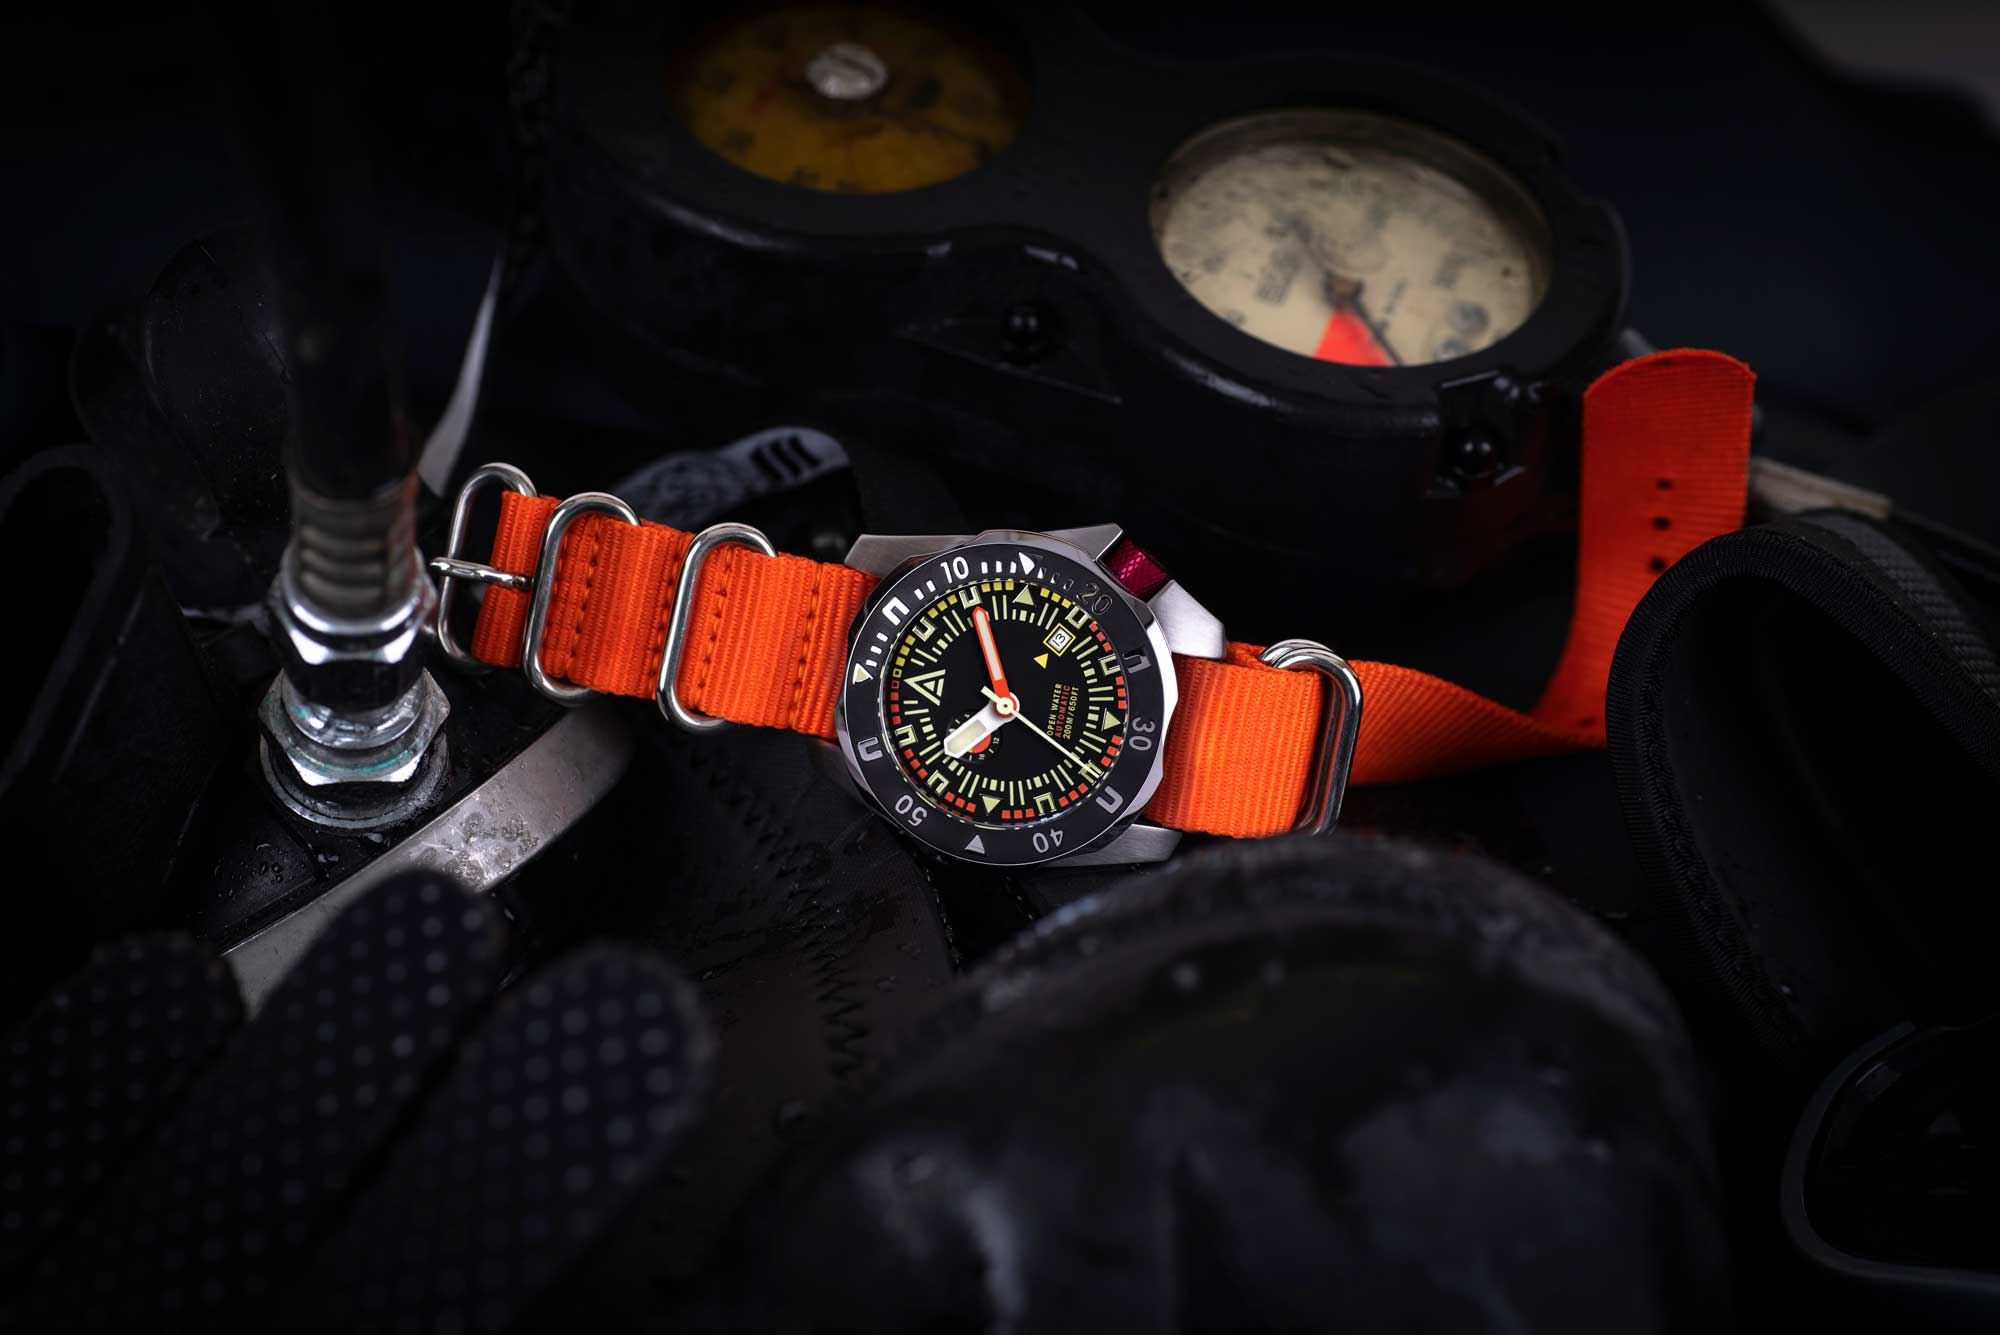 Diving-inspired N°1973 watch from W.T. Author